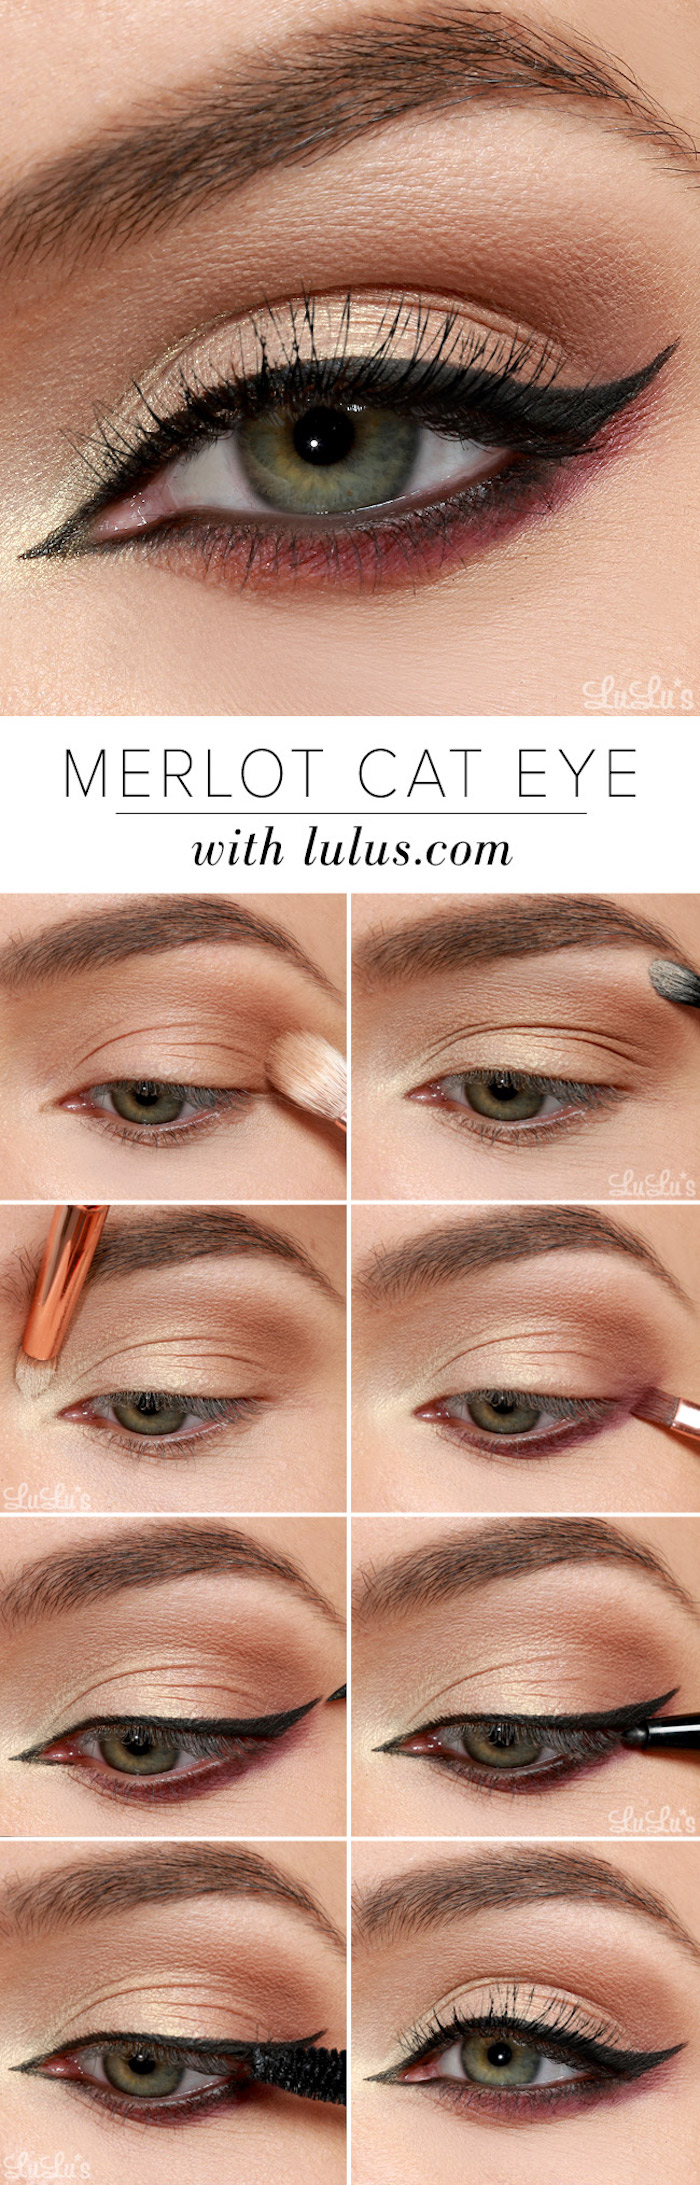 merlot cat eye step by step tutorial on woman with green eyes winged eyeliner tutorial photo collage